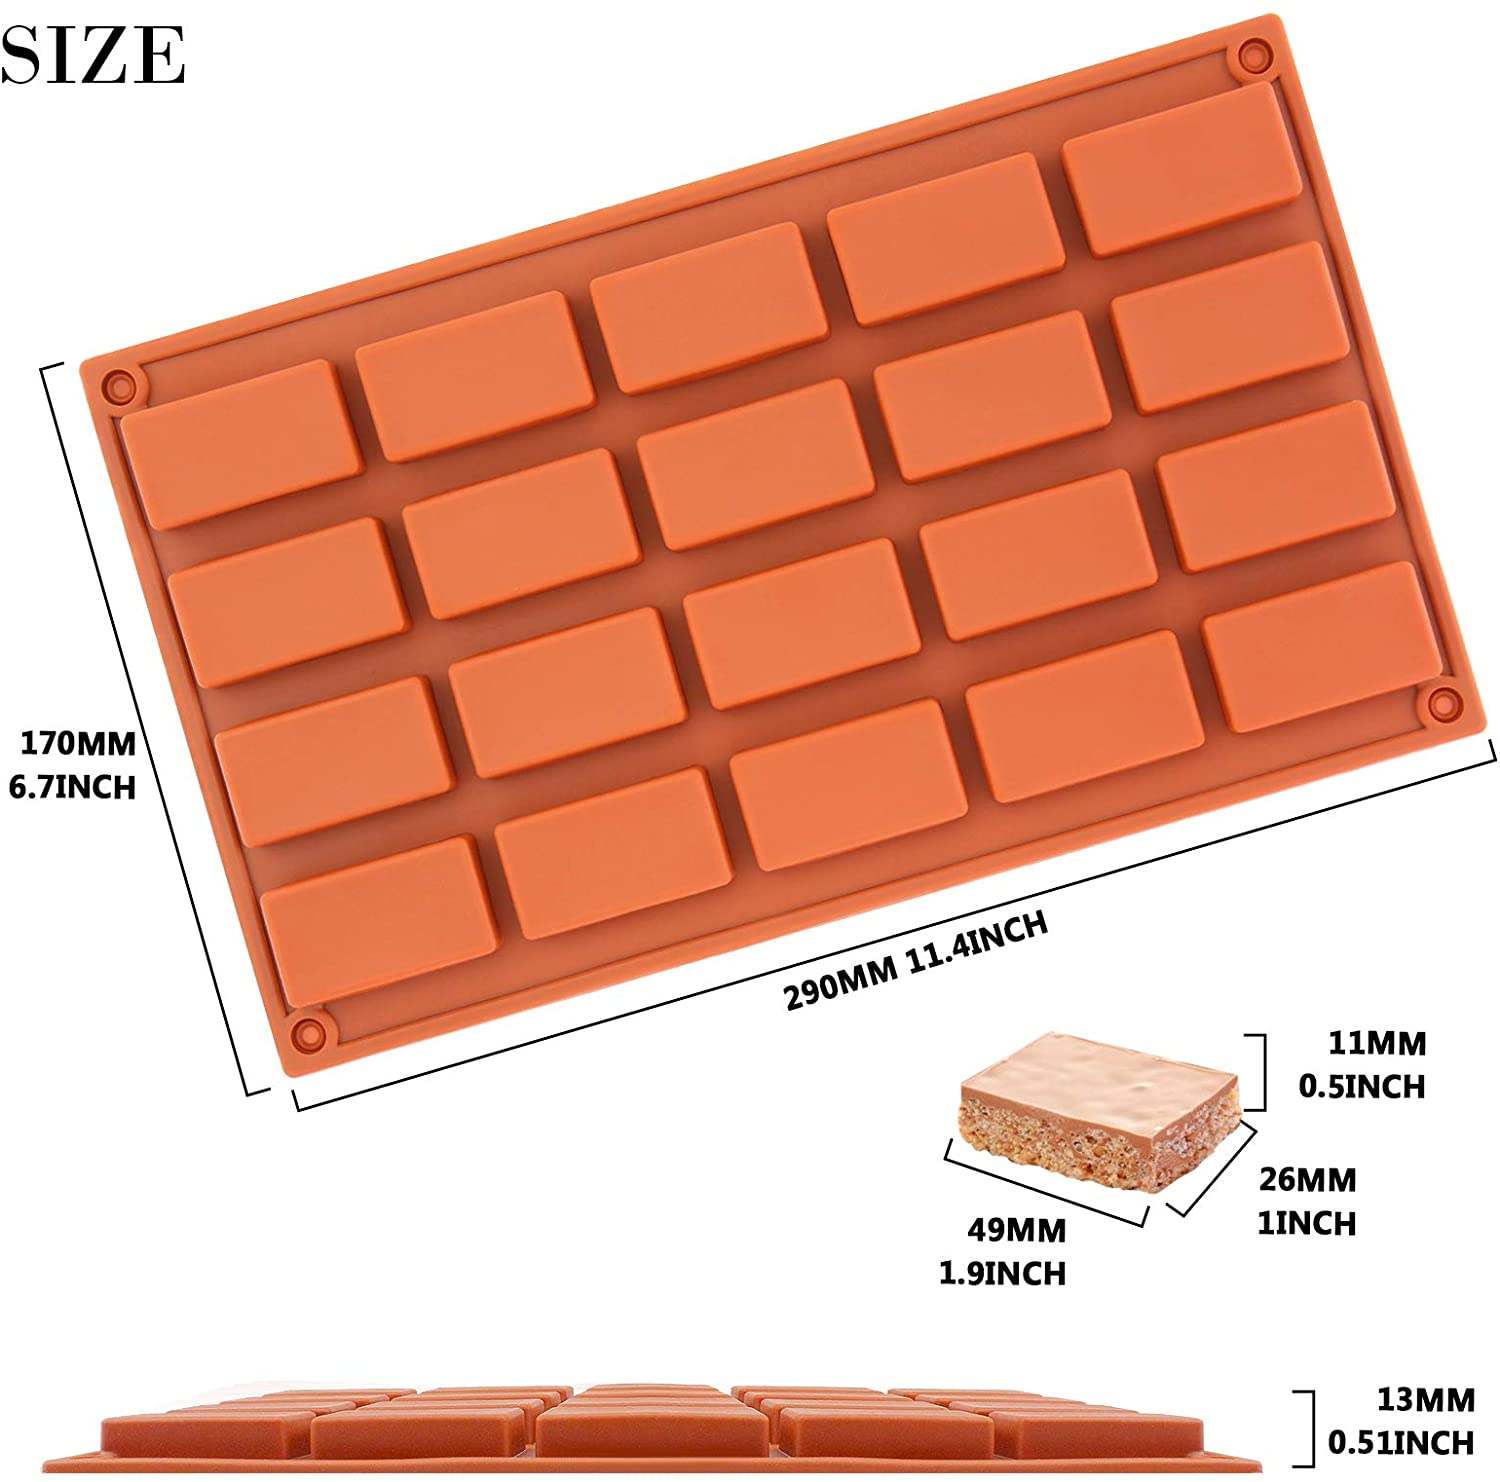 20 Cavities Rectangle Silicone Mold Caramel Candy Chocolate Truffles, Jelly, Praline, Ice Cube Cake Mold - Divena In